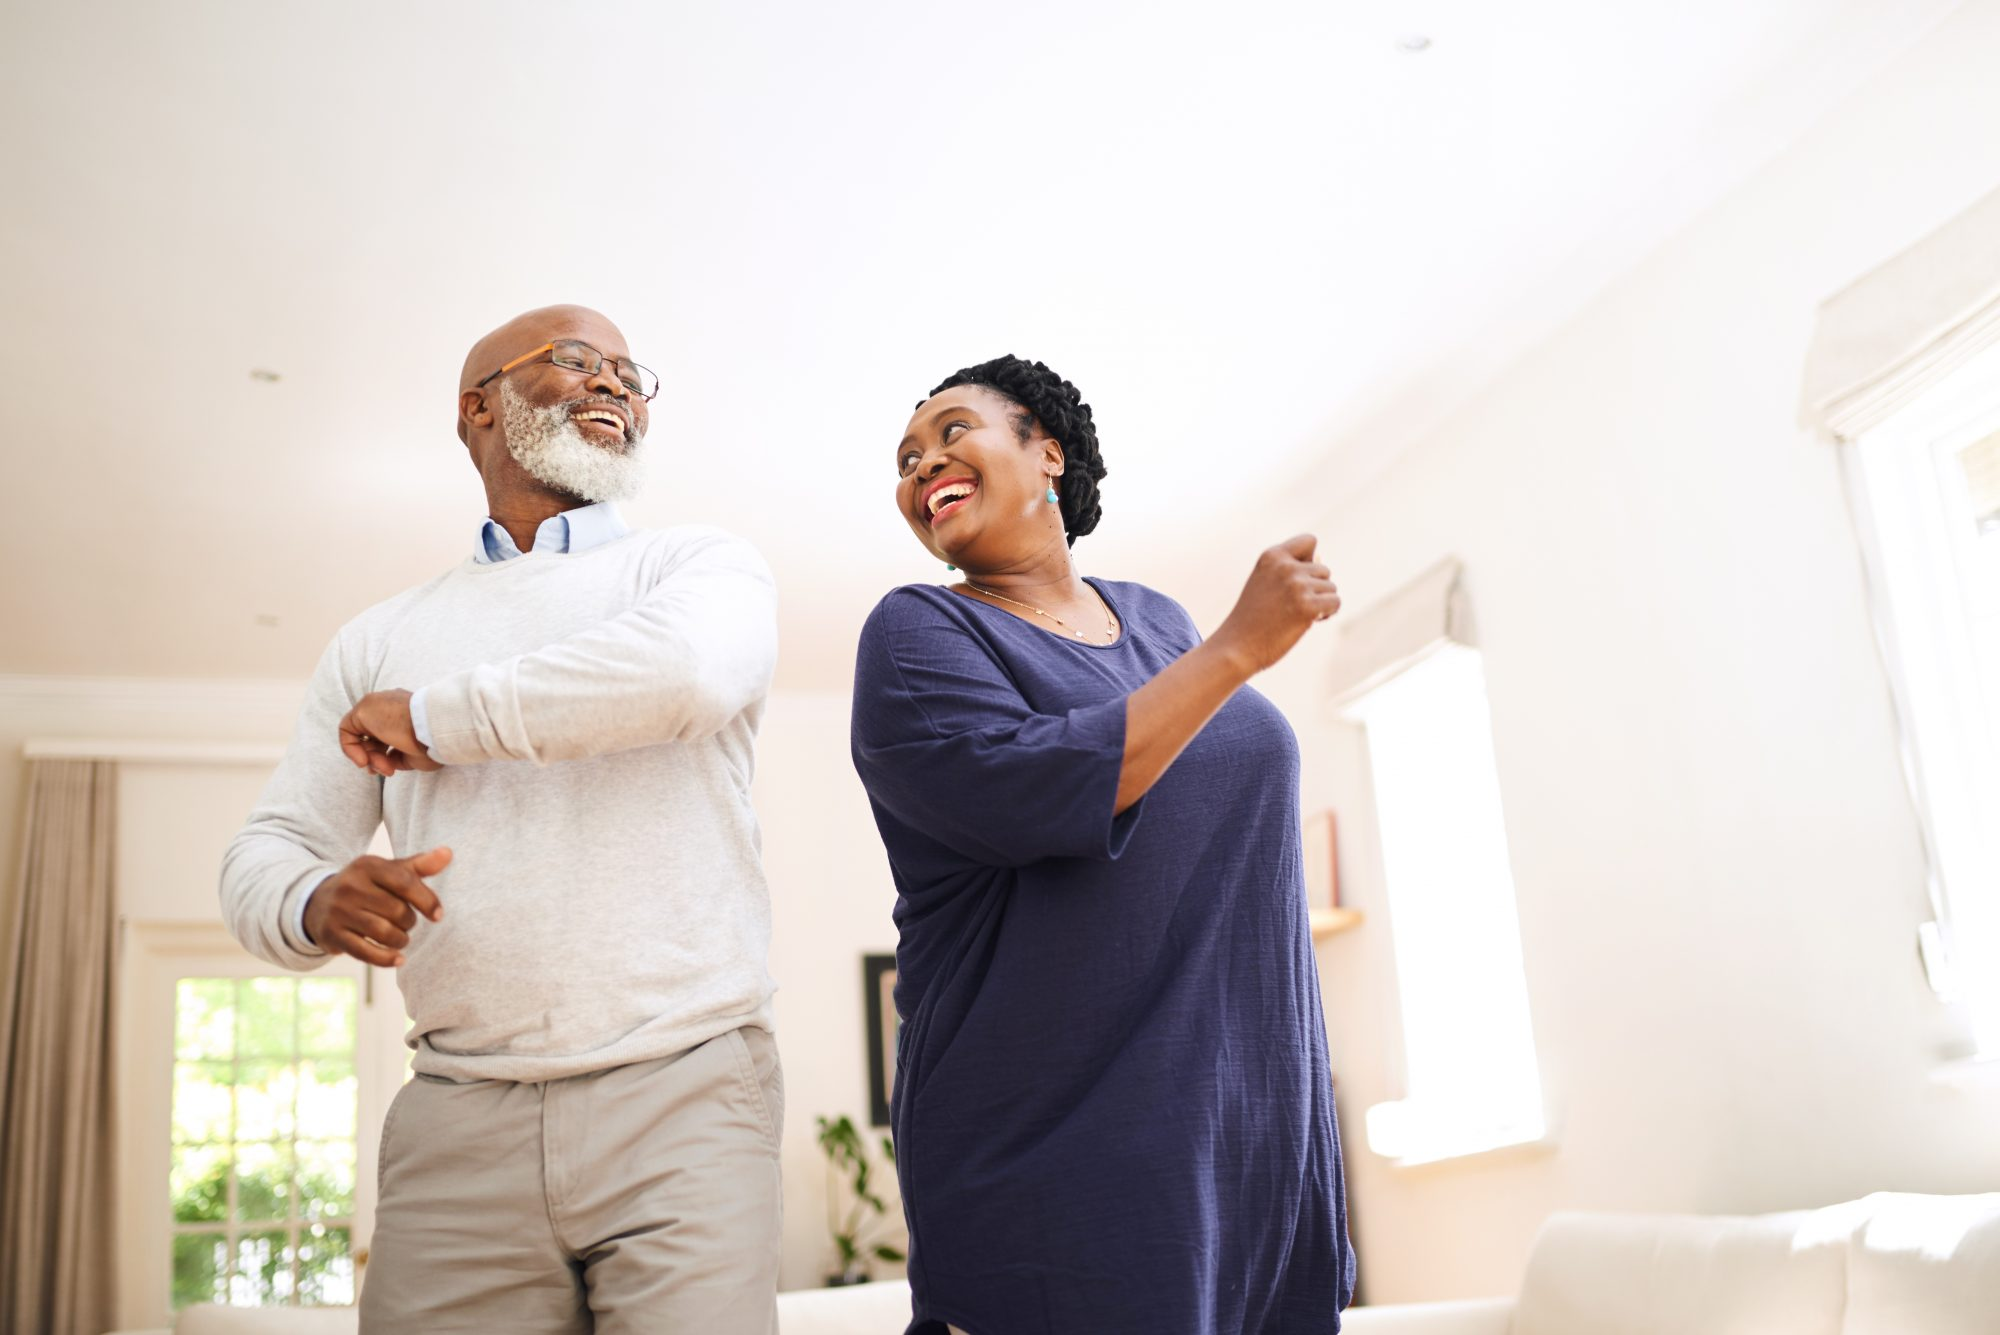 Mature couple dance together in their living room.